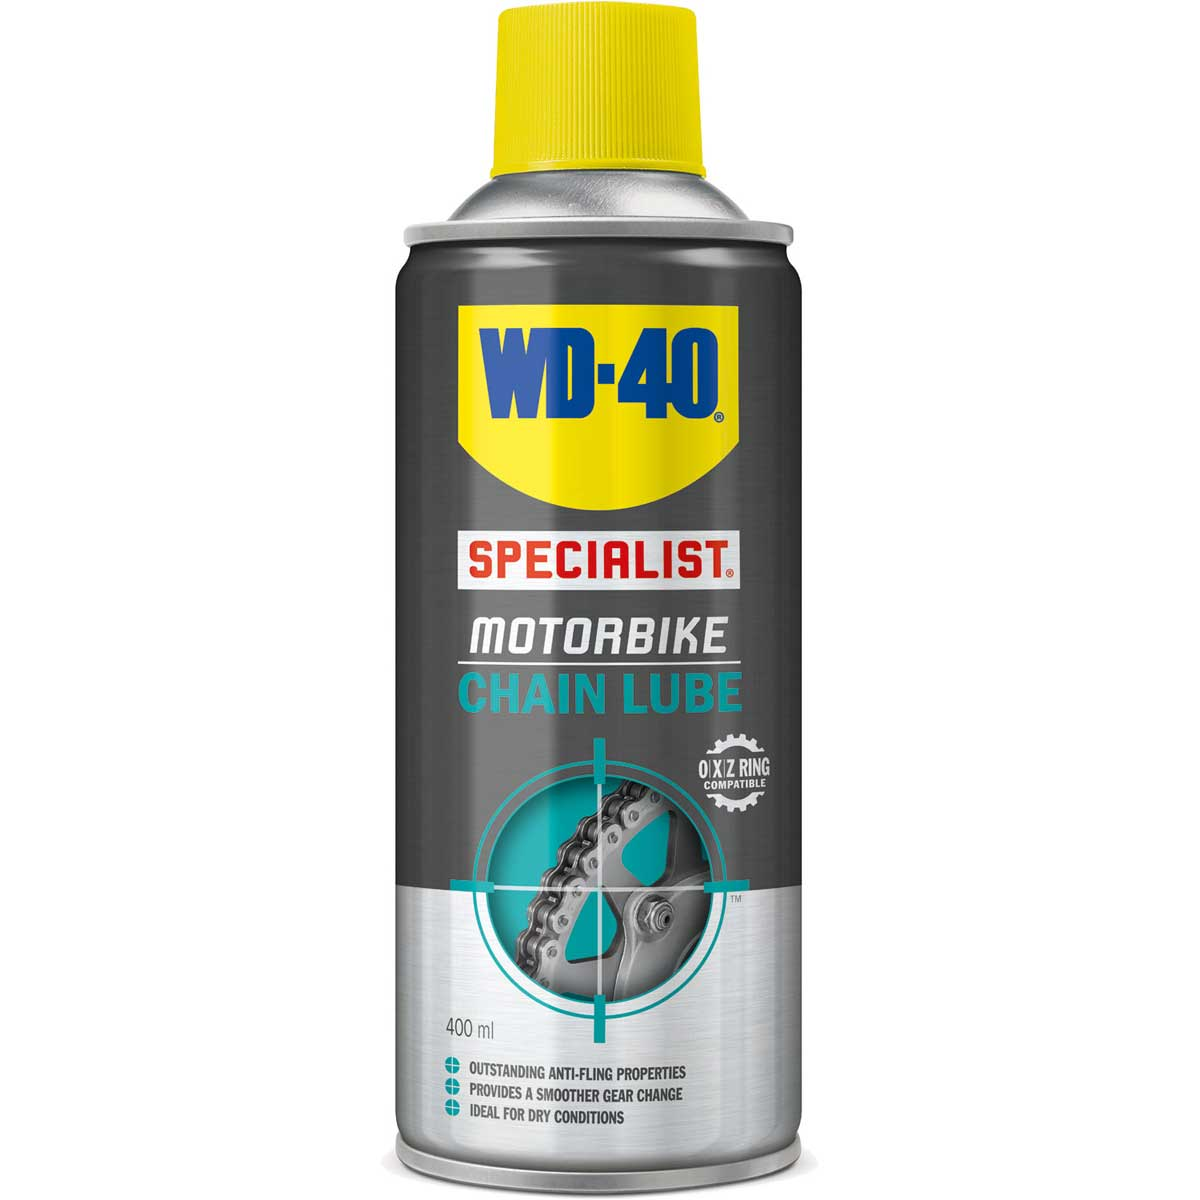 The WD40 Specialist Motorbike Chain Lube